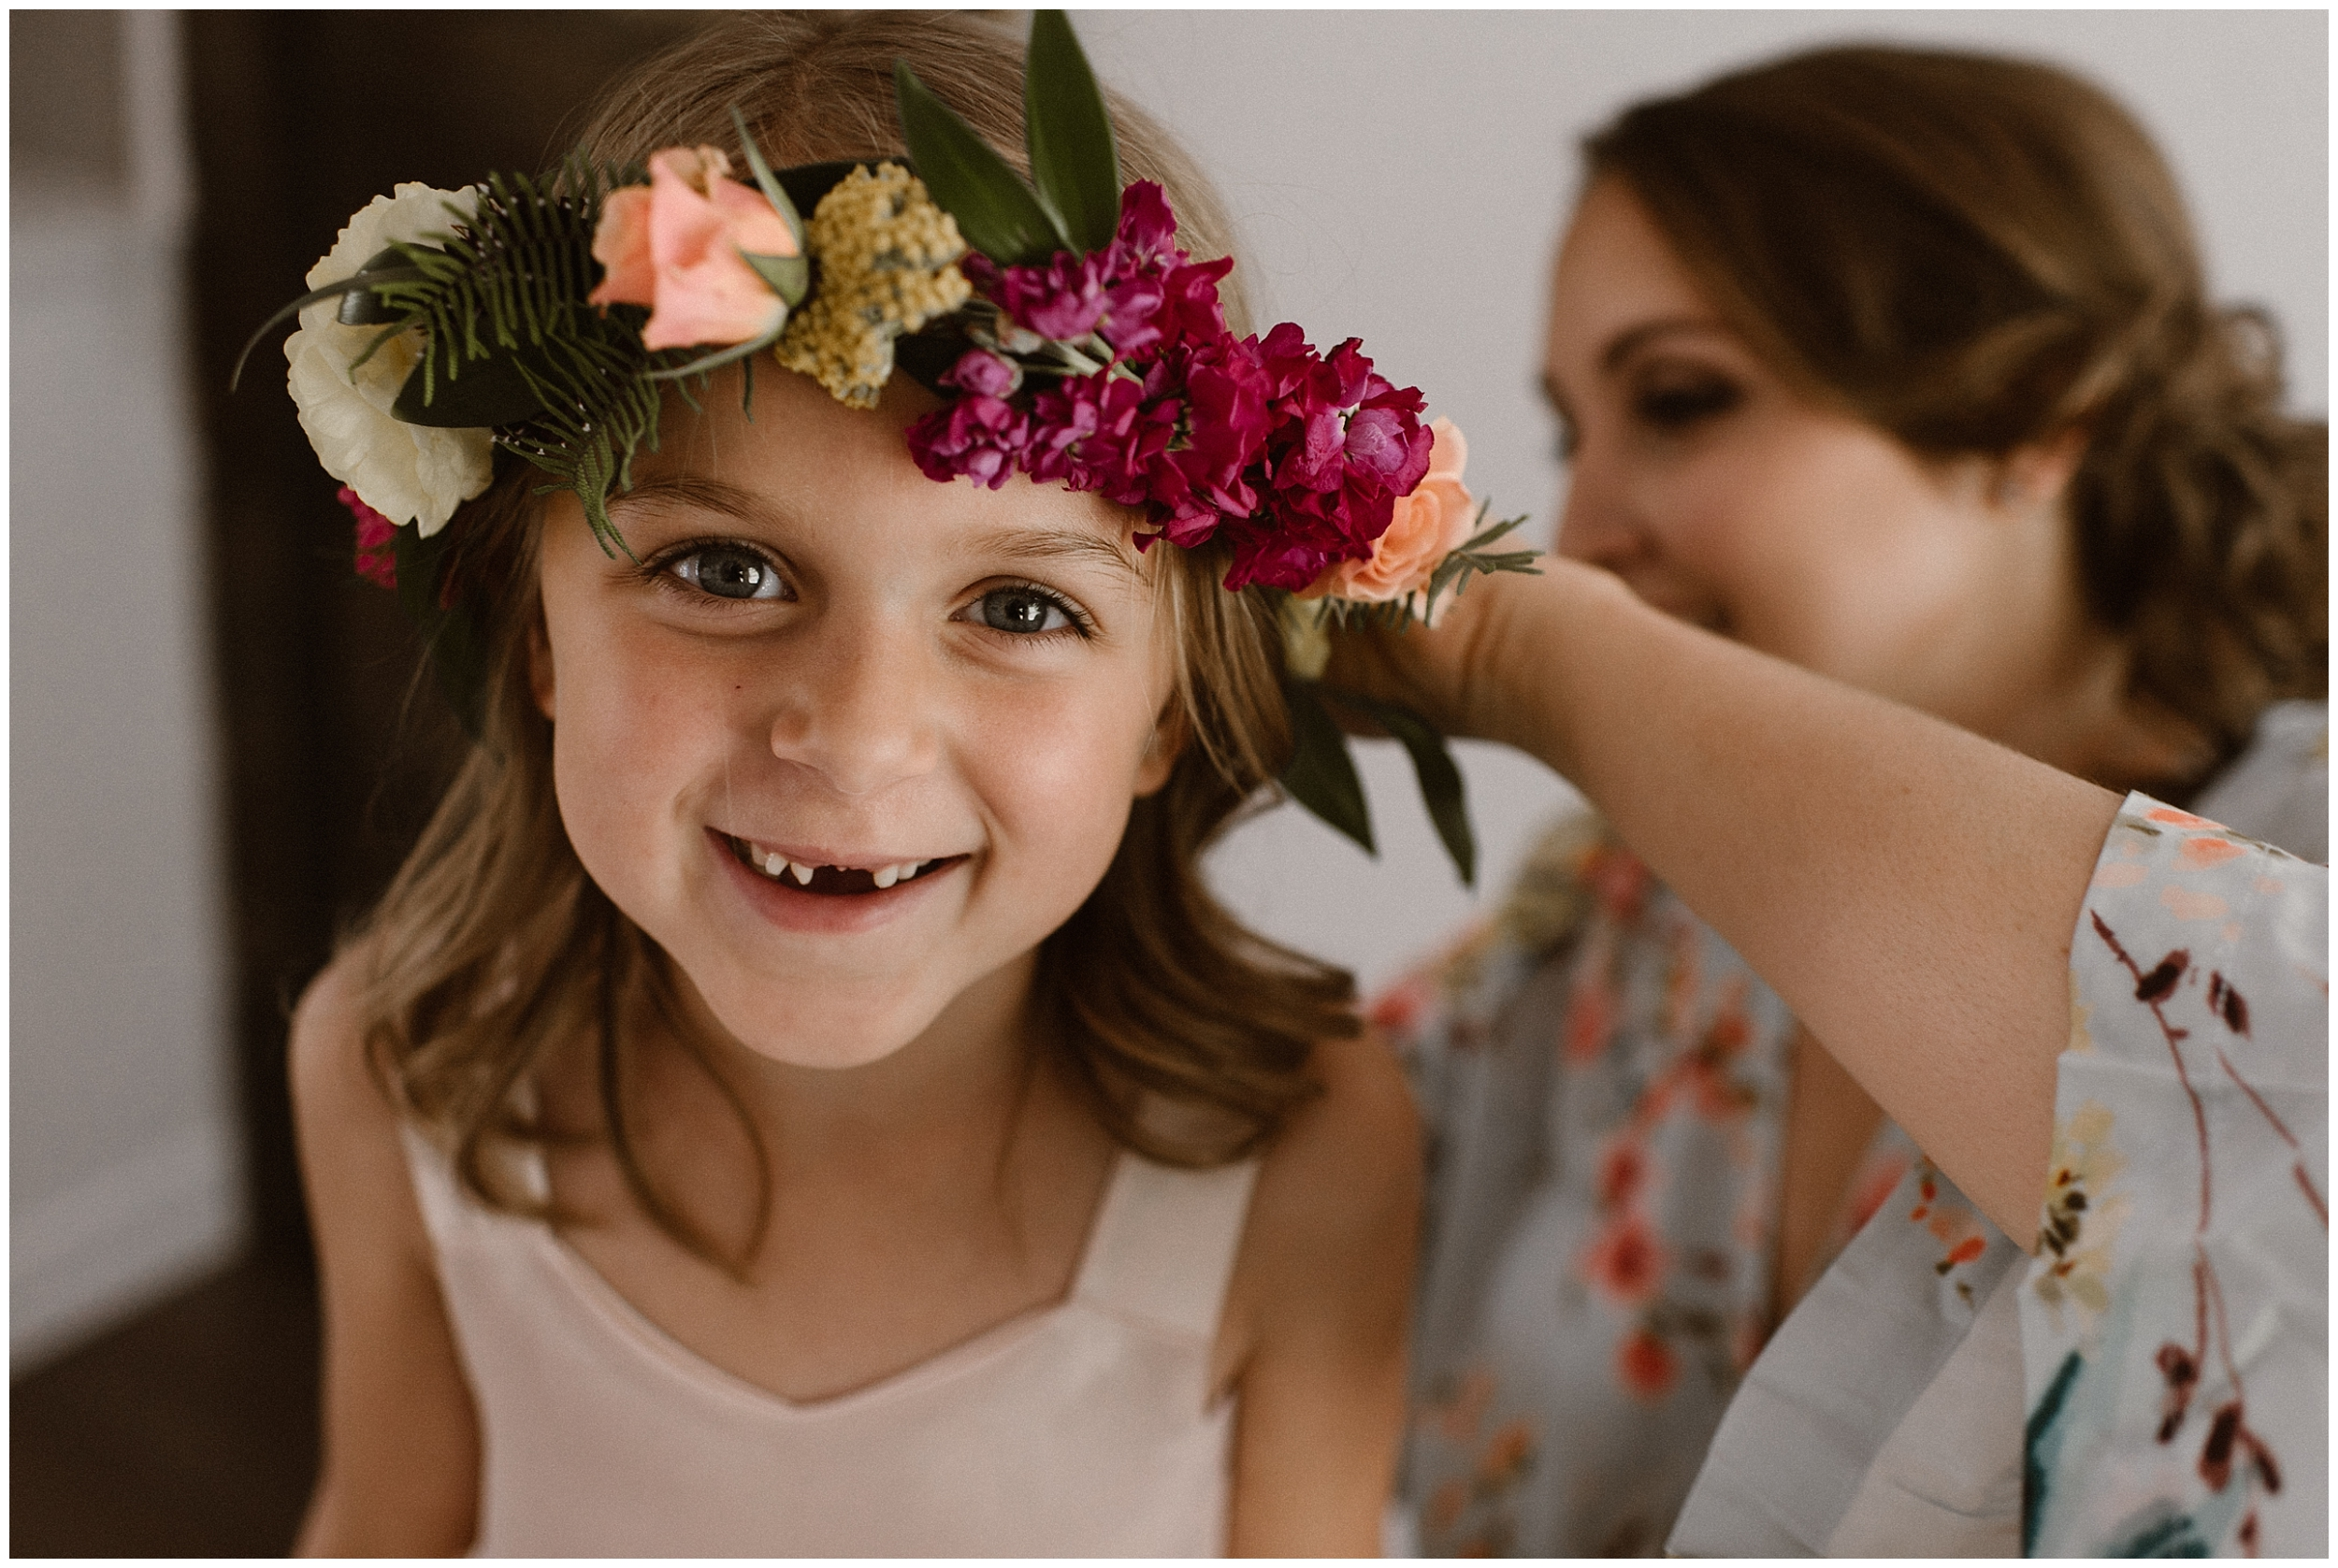 A mother (the bride) helps her daughter adjust her flower crown. The little girl, sporting a toothless grin, looks up at the camera in these elopement photos captured by Adventure Instead, an elopement wedding photographer.